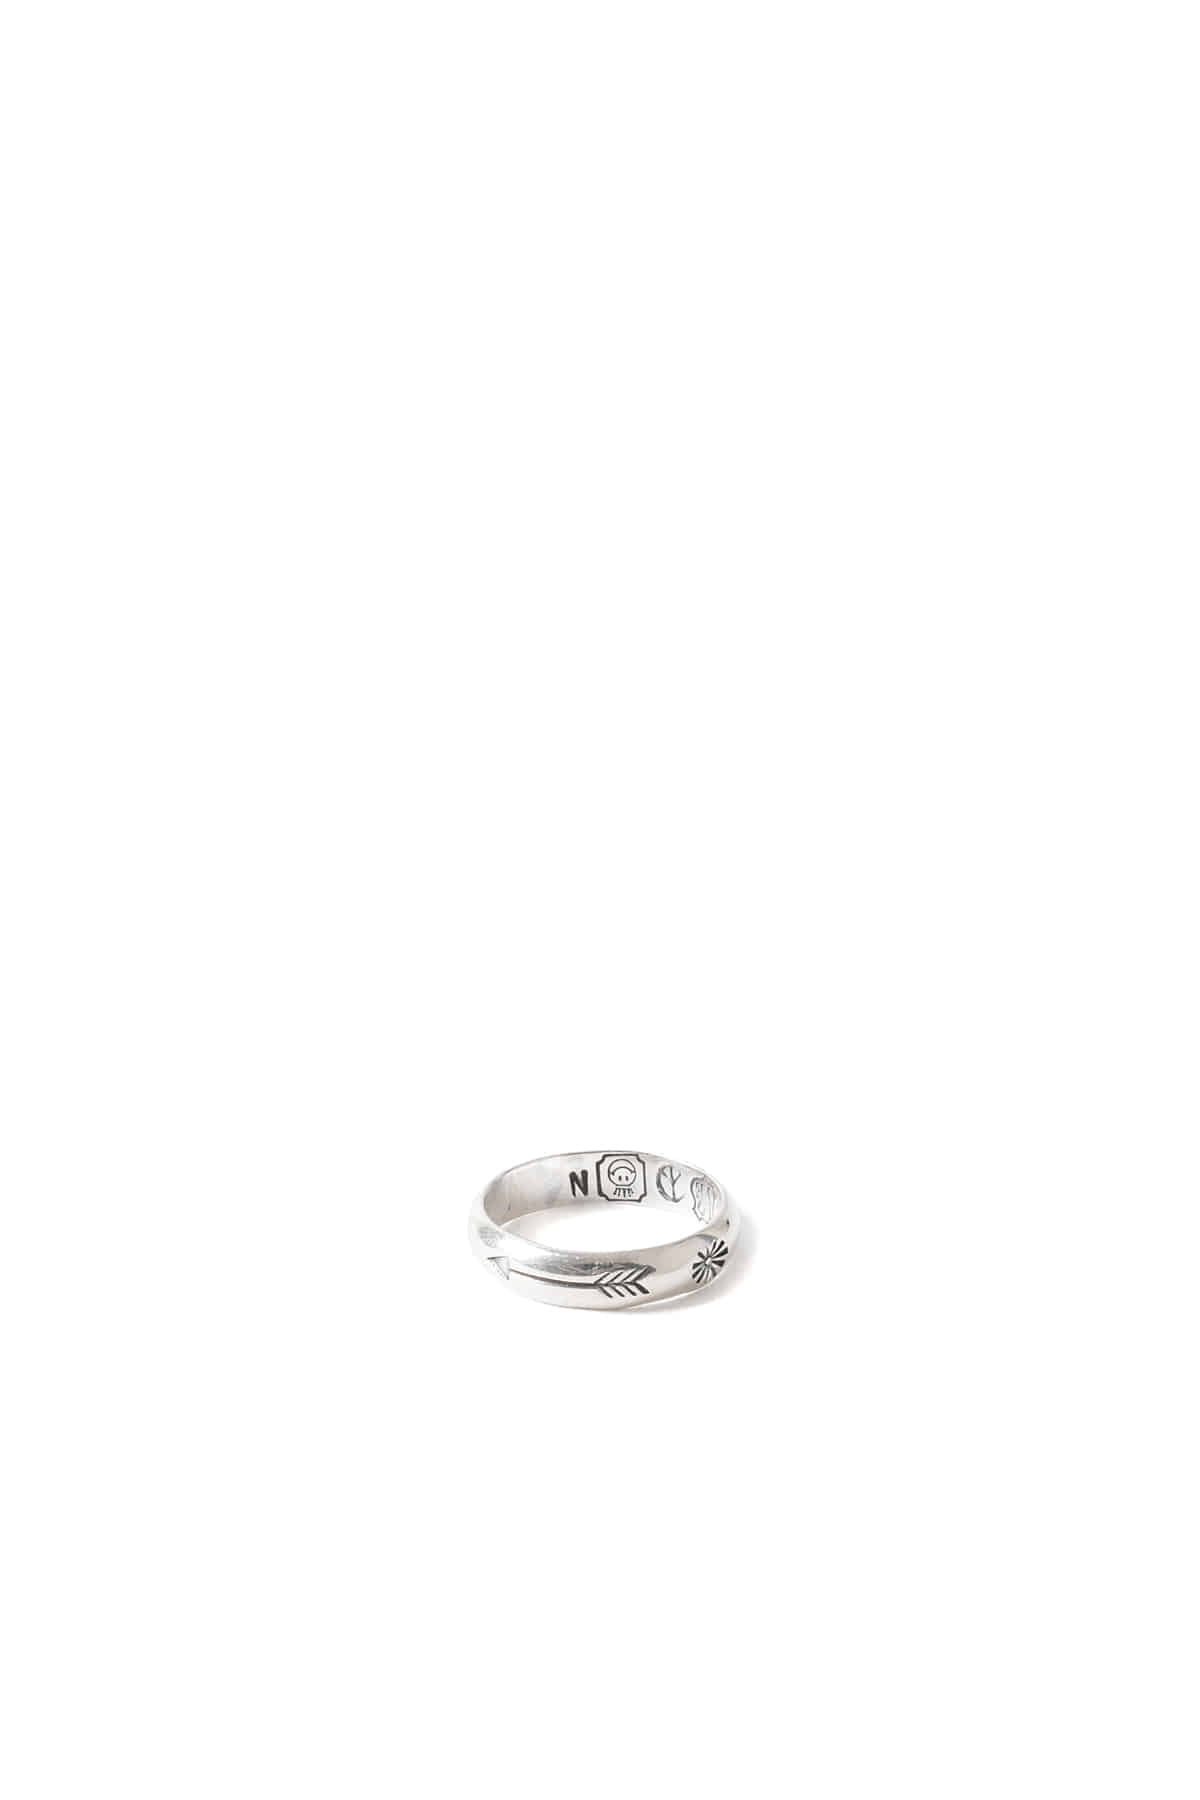 North Works : Stamp Ring - W024 (Silver)